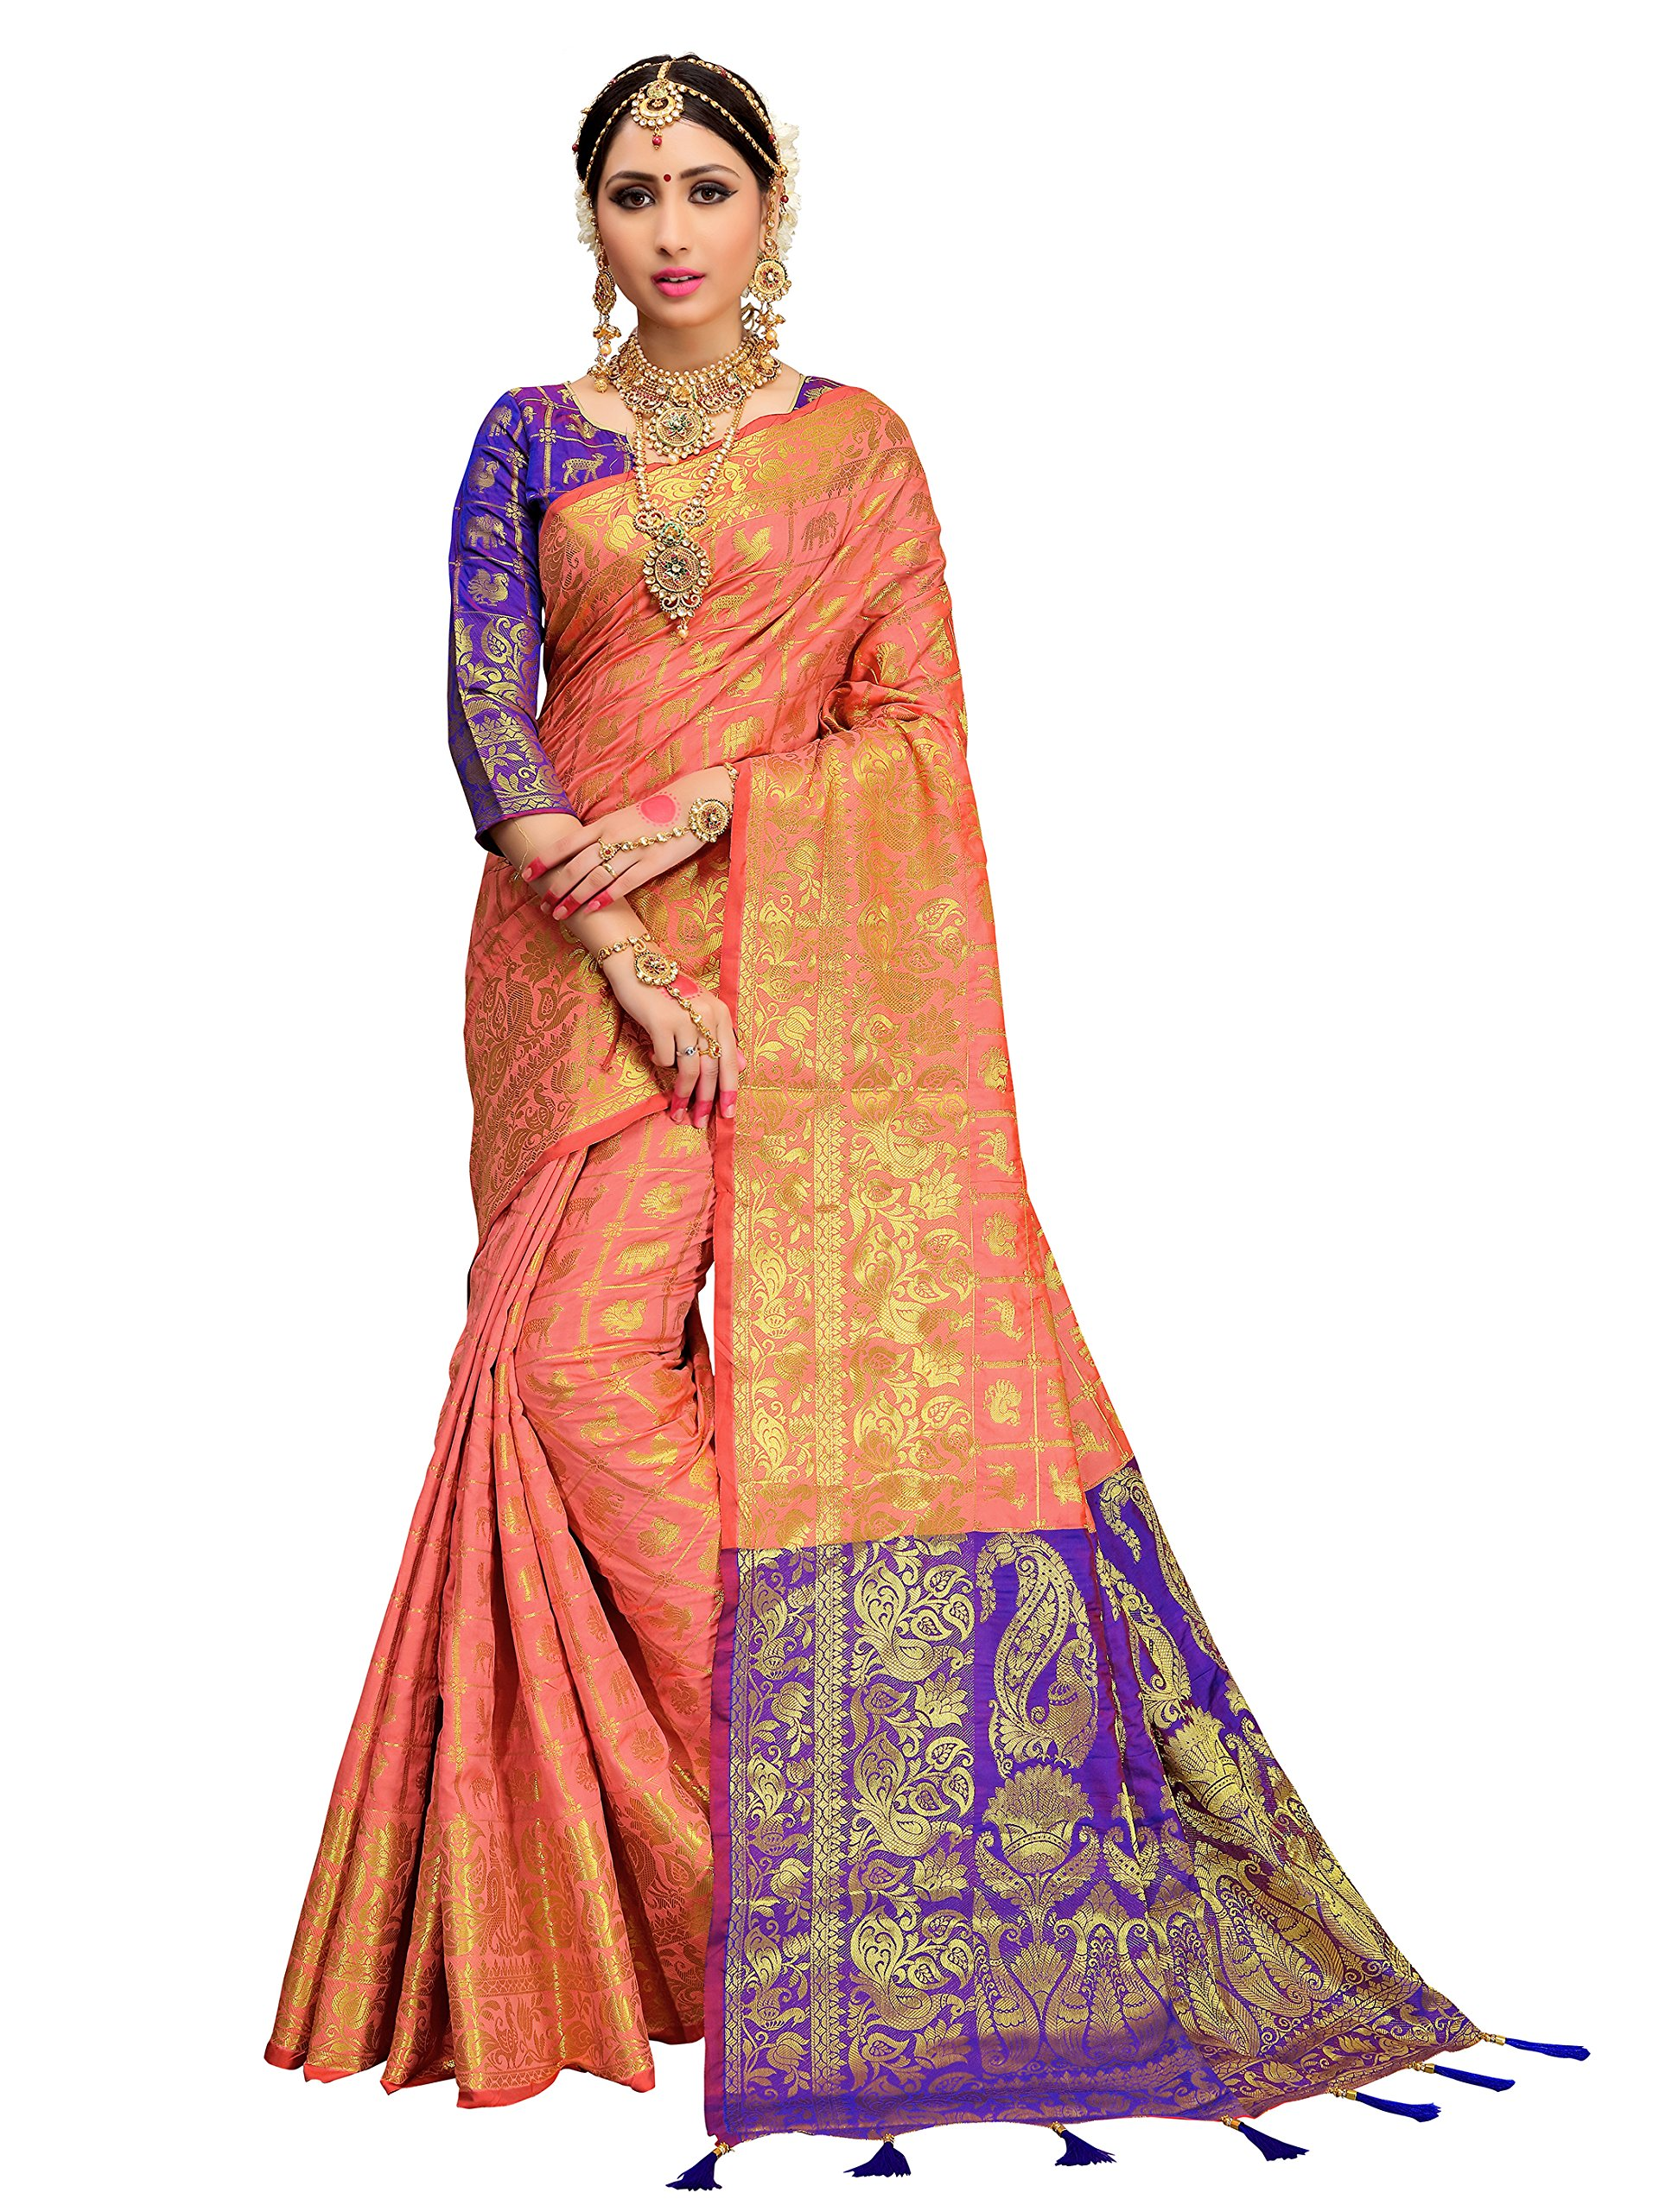 ELINA FASHION Sarees for Women Patola Art Silk Woven Work Saree l Indian Bollywood Wedding Ethnic Sari with Blouse Piece (Coral)